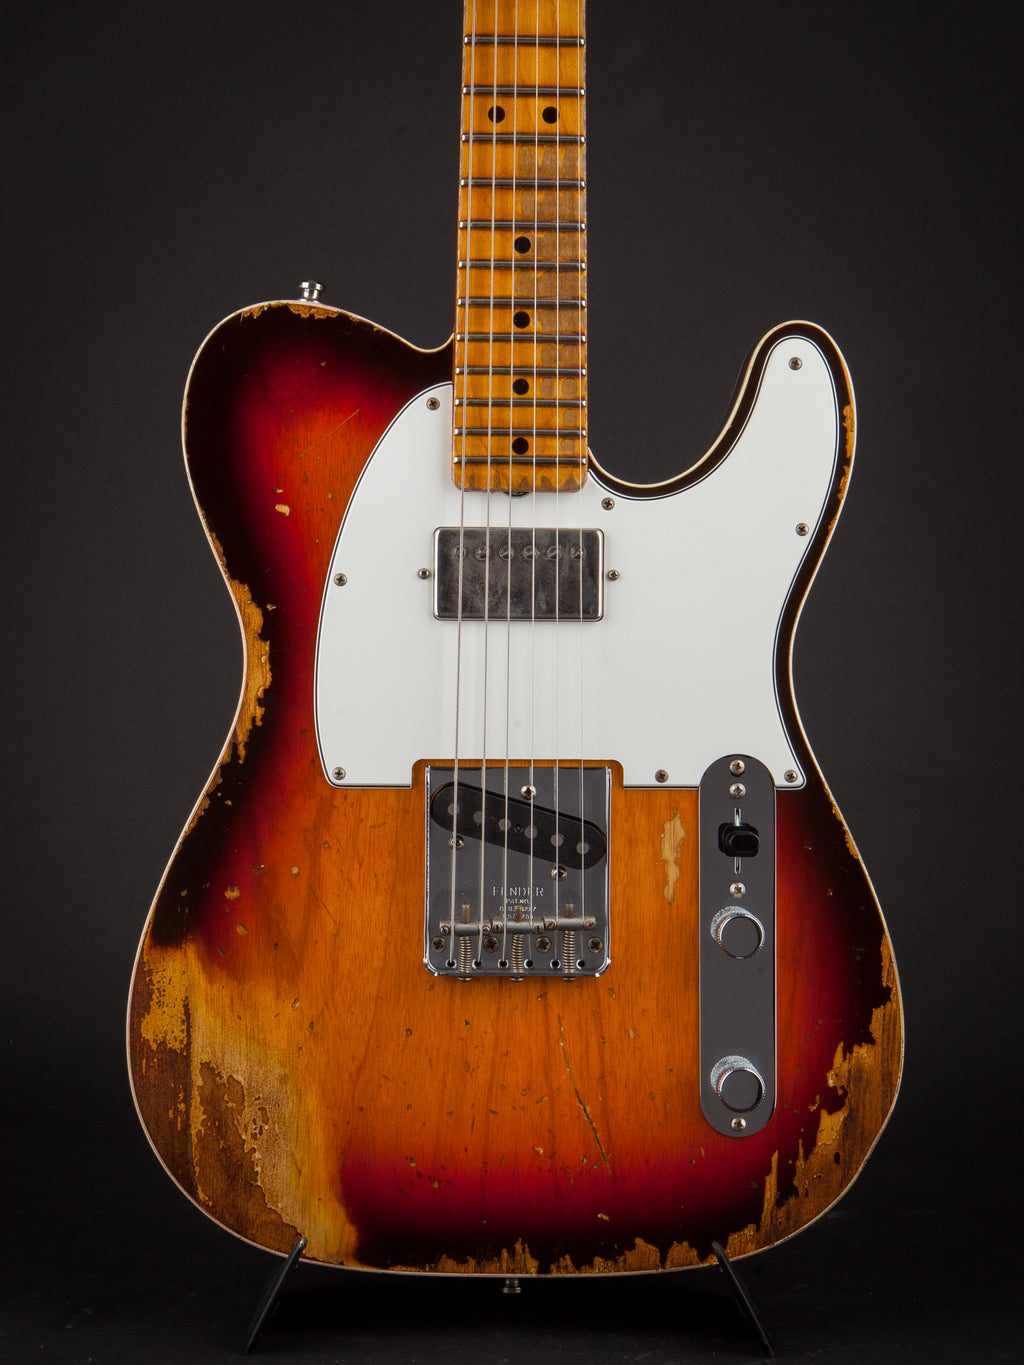 Fender Custom Shop:67 Telecaster Heavy Relic 3-Tone Sunburst #R97664